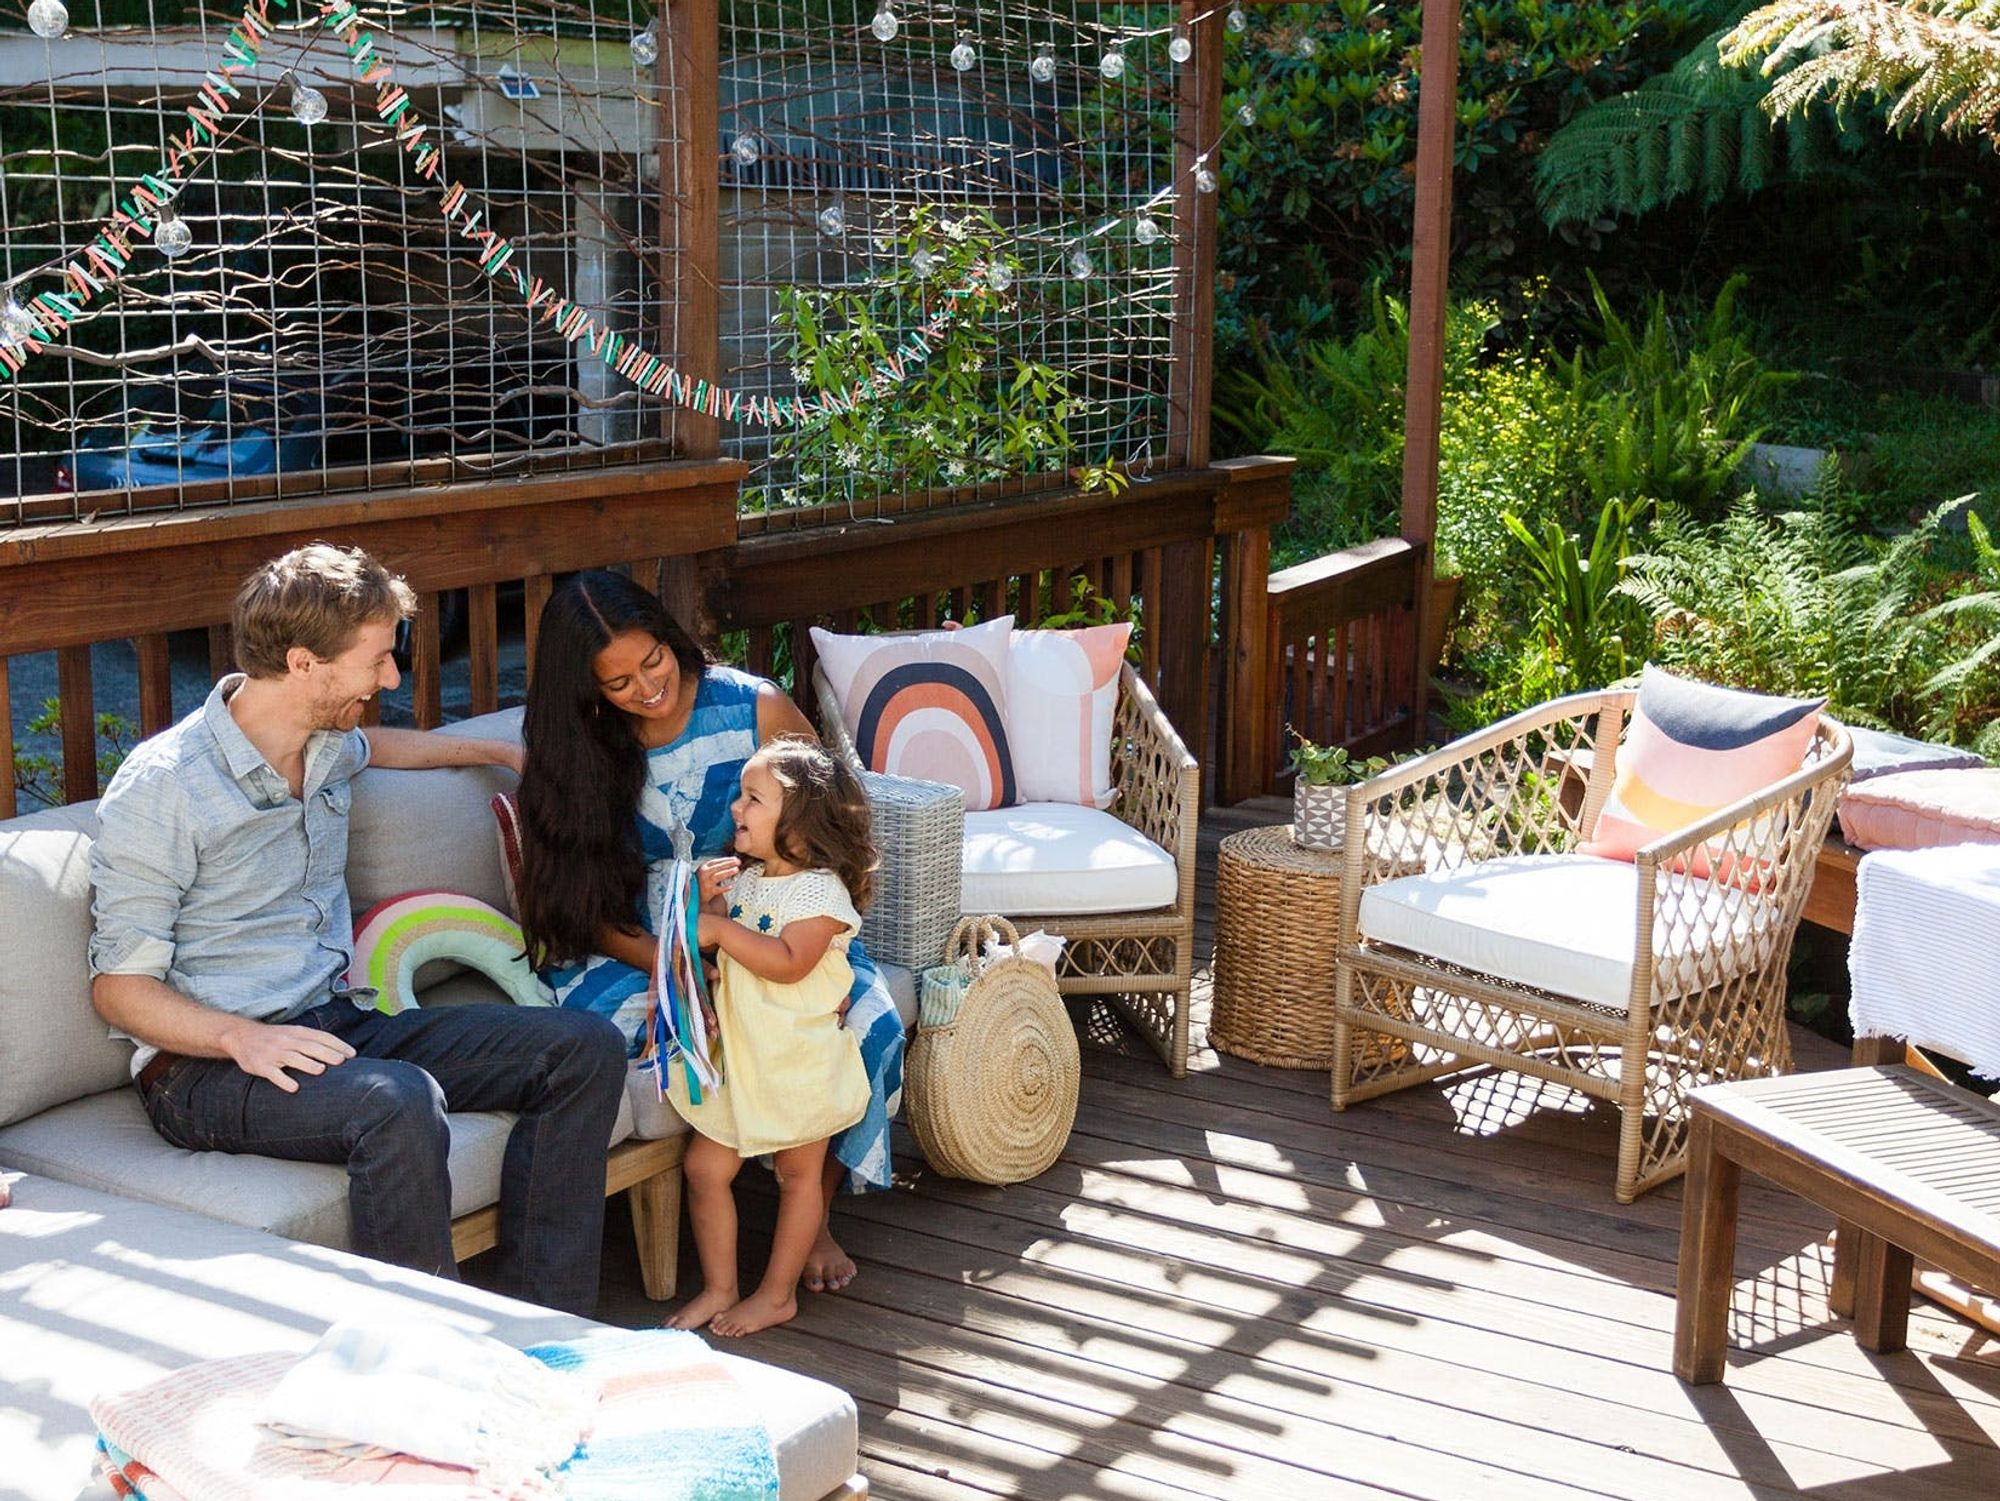 This Picturesque Back Patio Gets a Makeover to Become a Cozy Outdoor Living Room